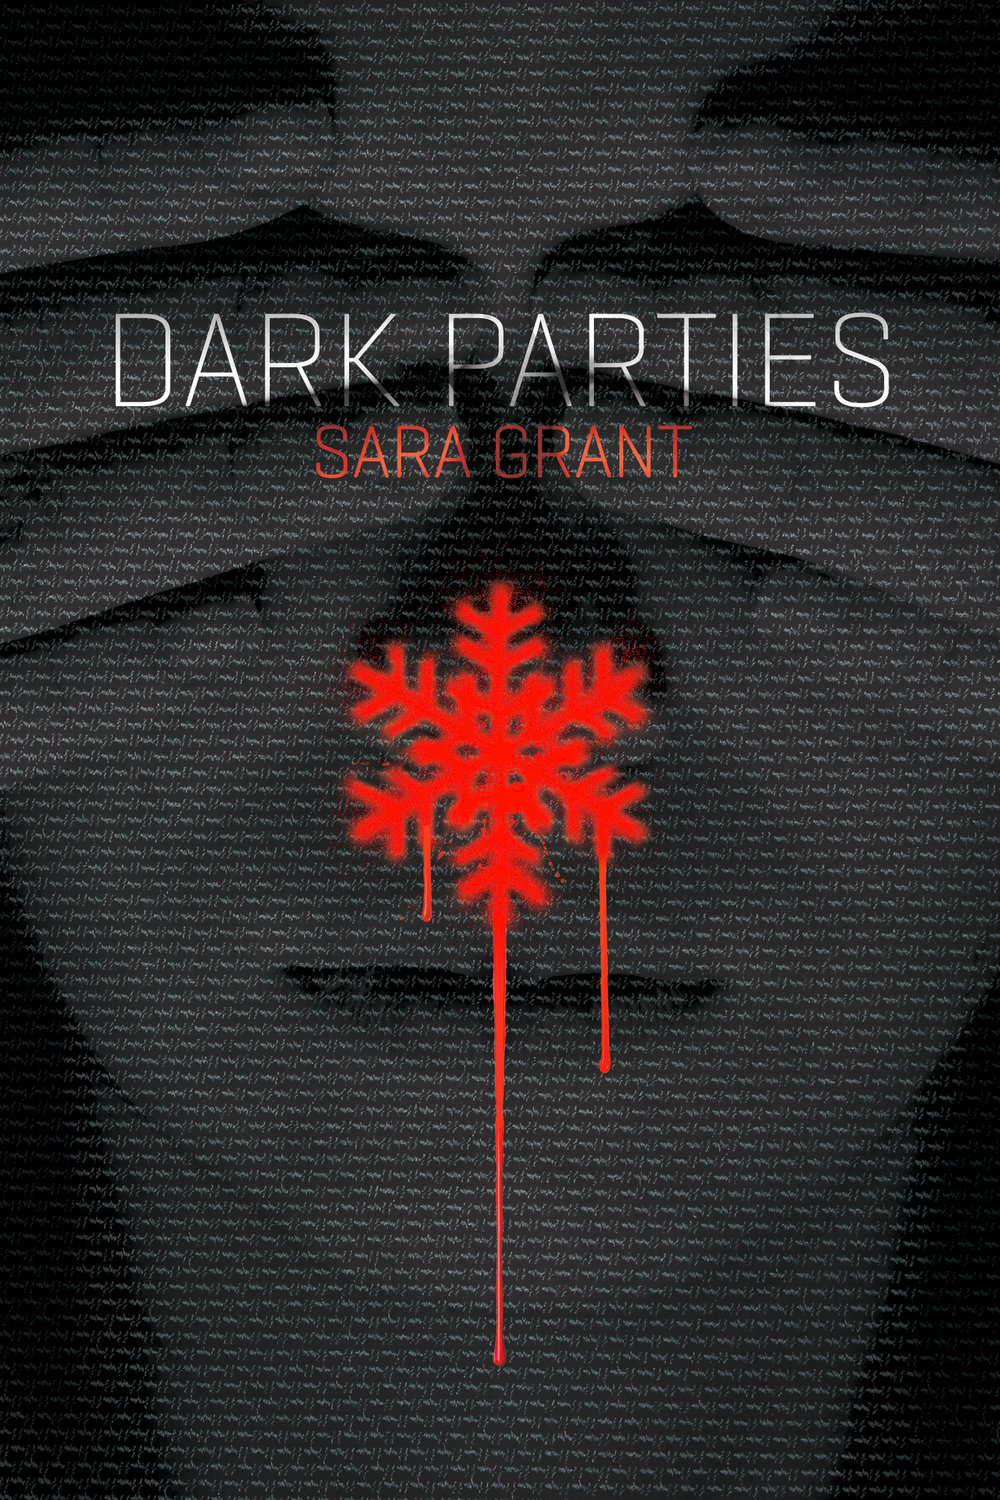 Dark Parties by Sara Grant Designed by Ben Mautner for Little, Brown Art Directed by David Kaplan